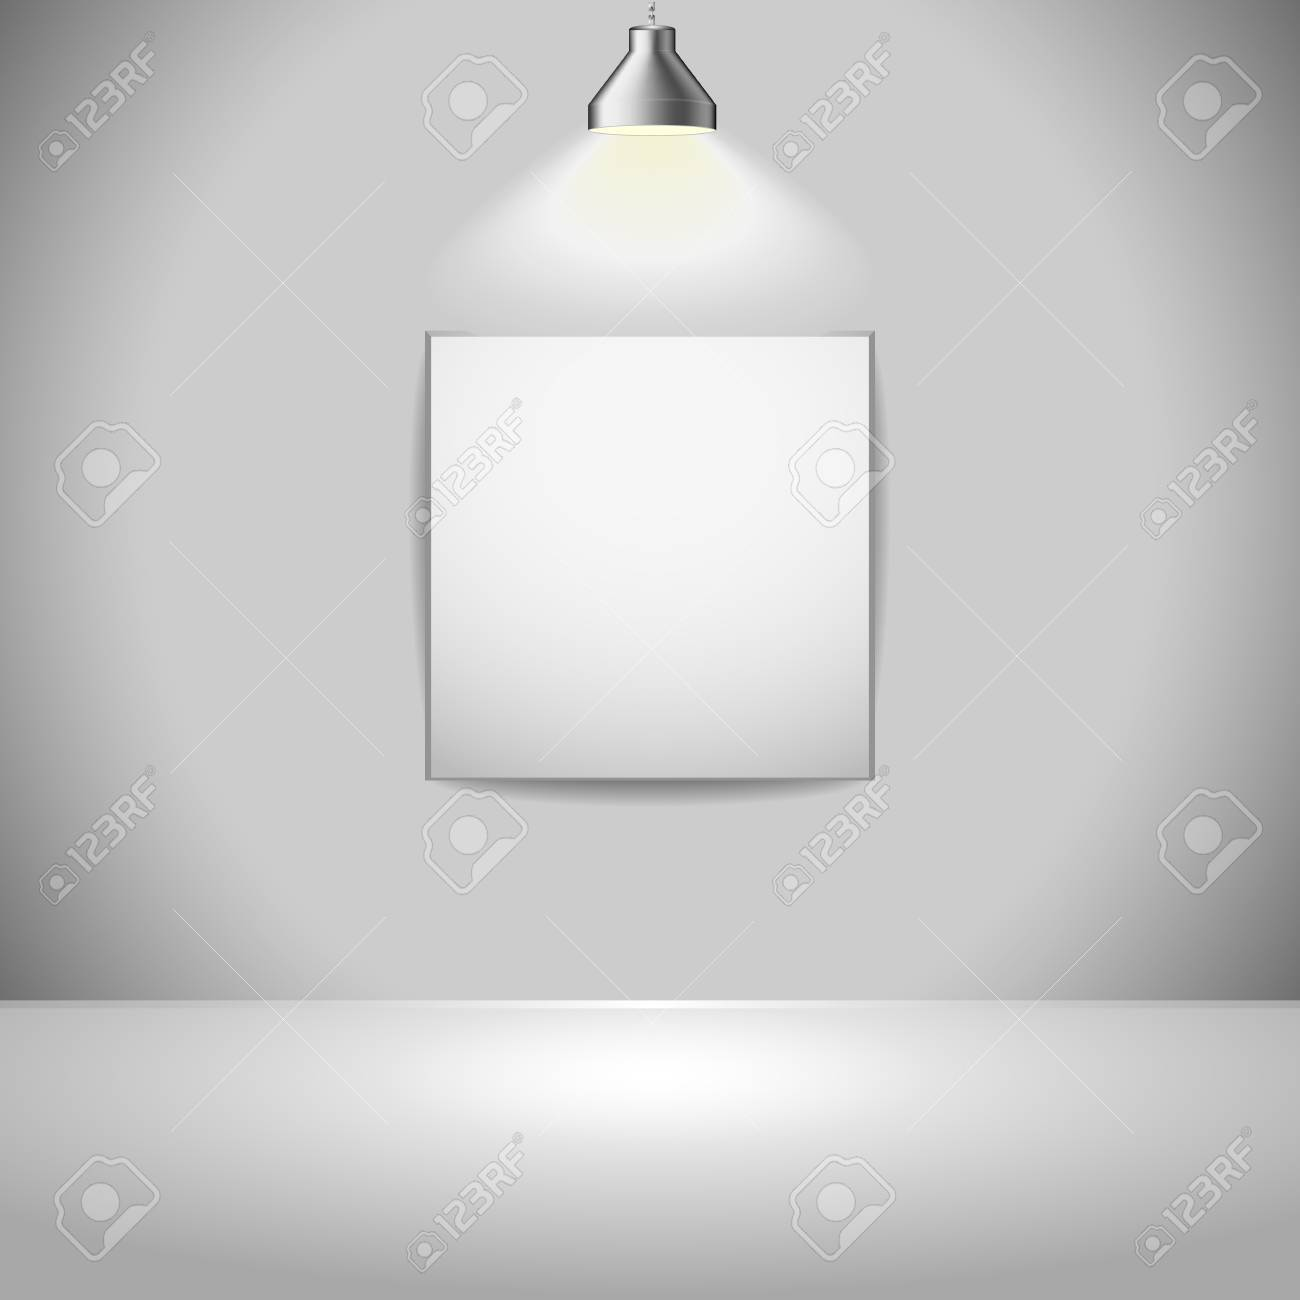 illustration of an exhition frame with light source from above, eps 8 vector Stock Vector - 11856014